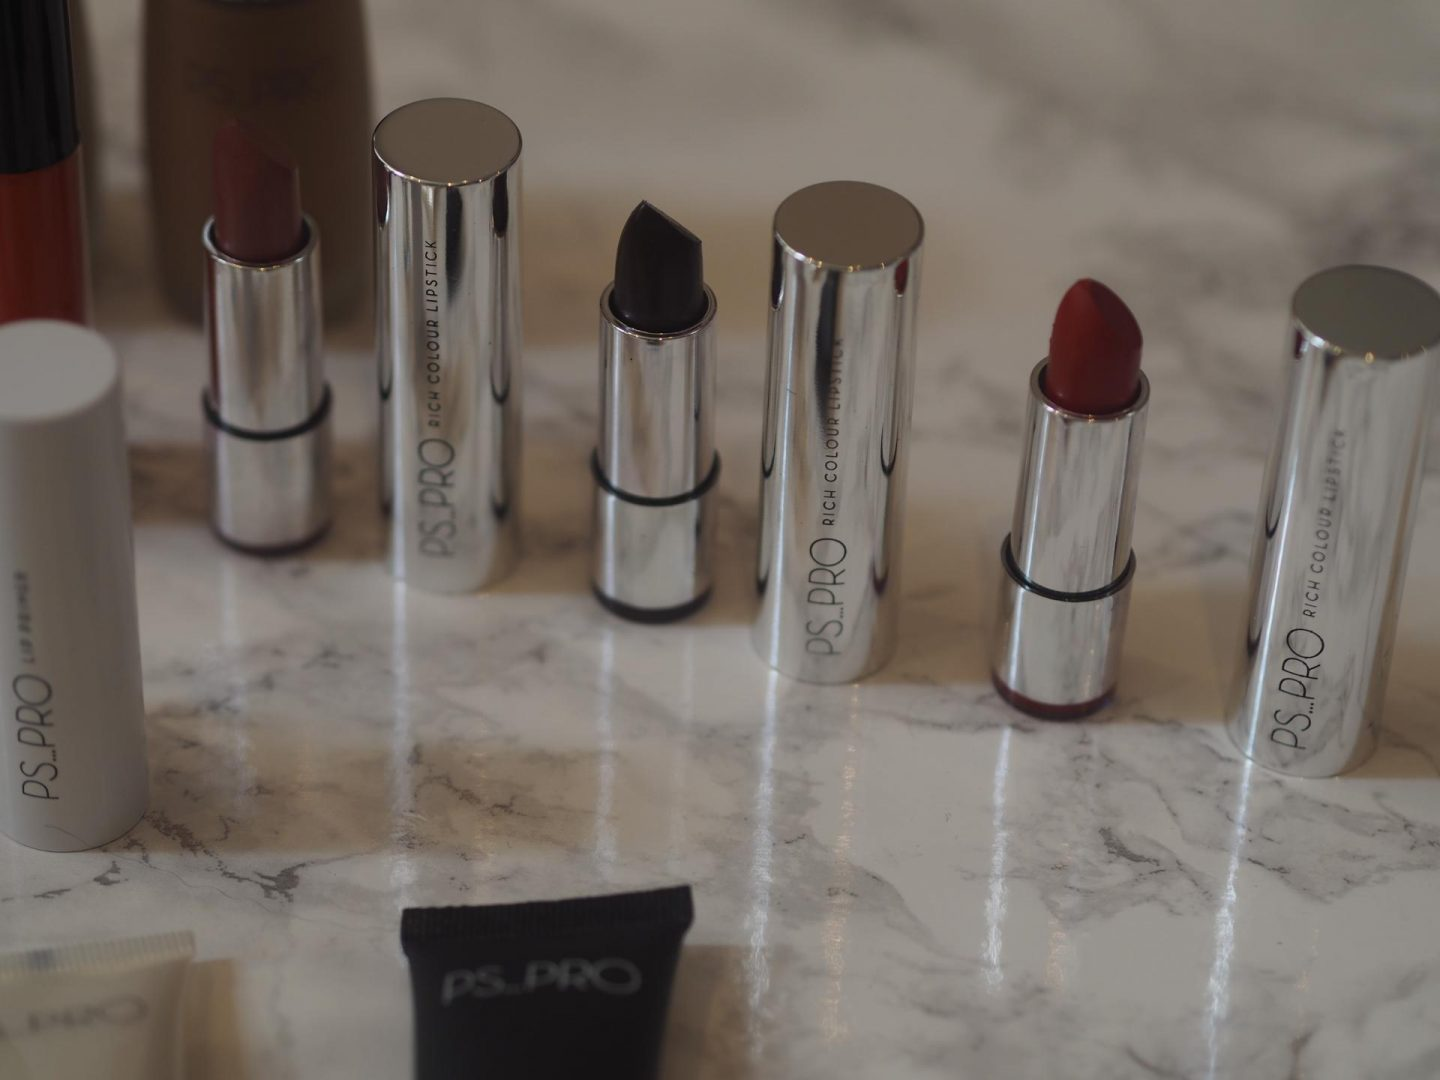 Primark PS Pro - Products: Rich Colour Lipstick